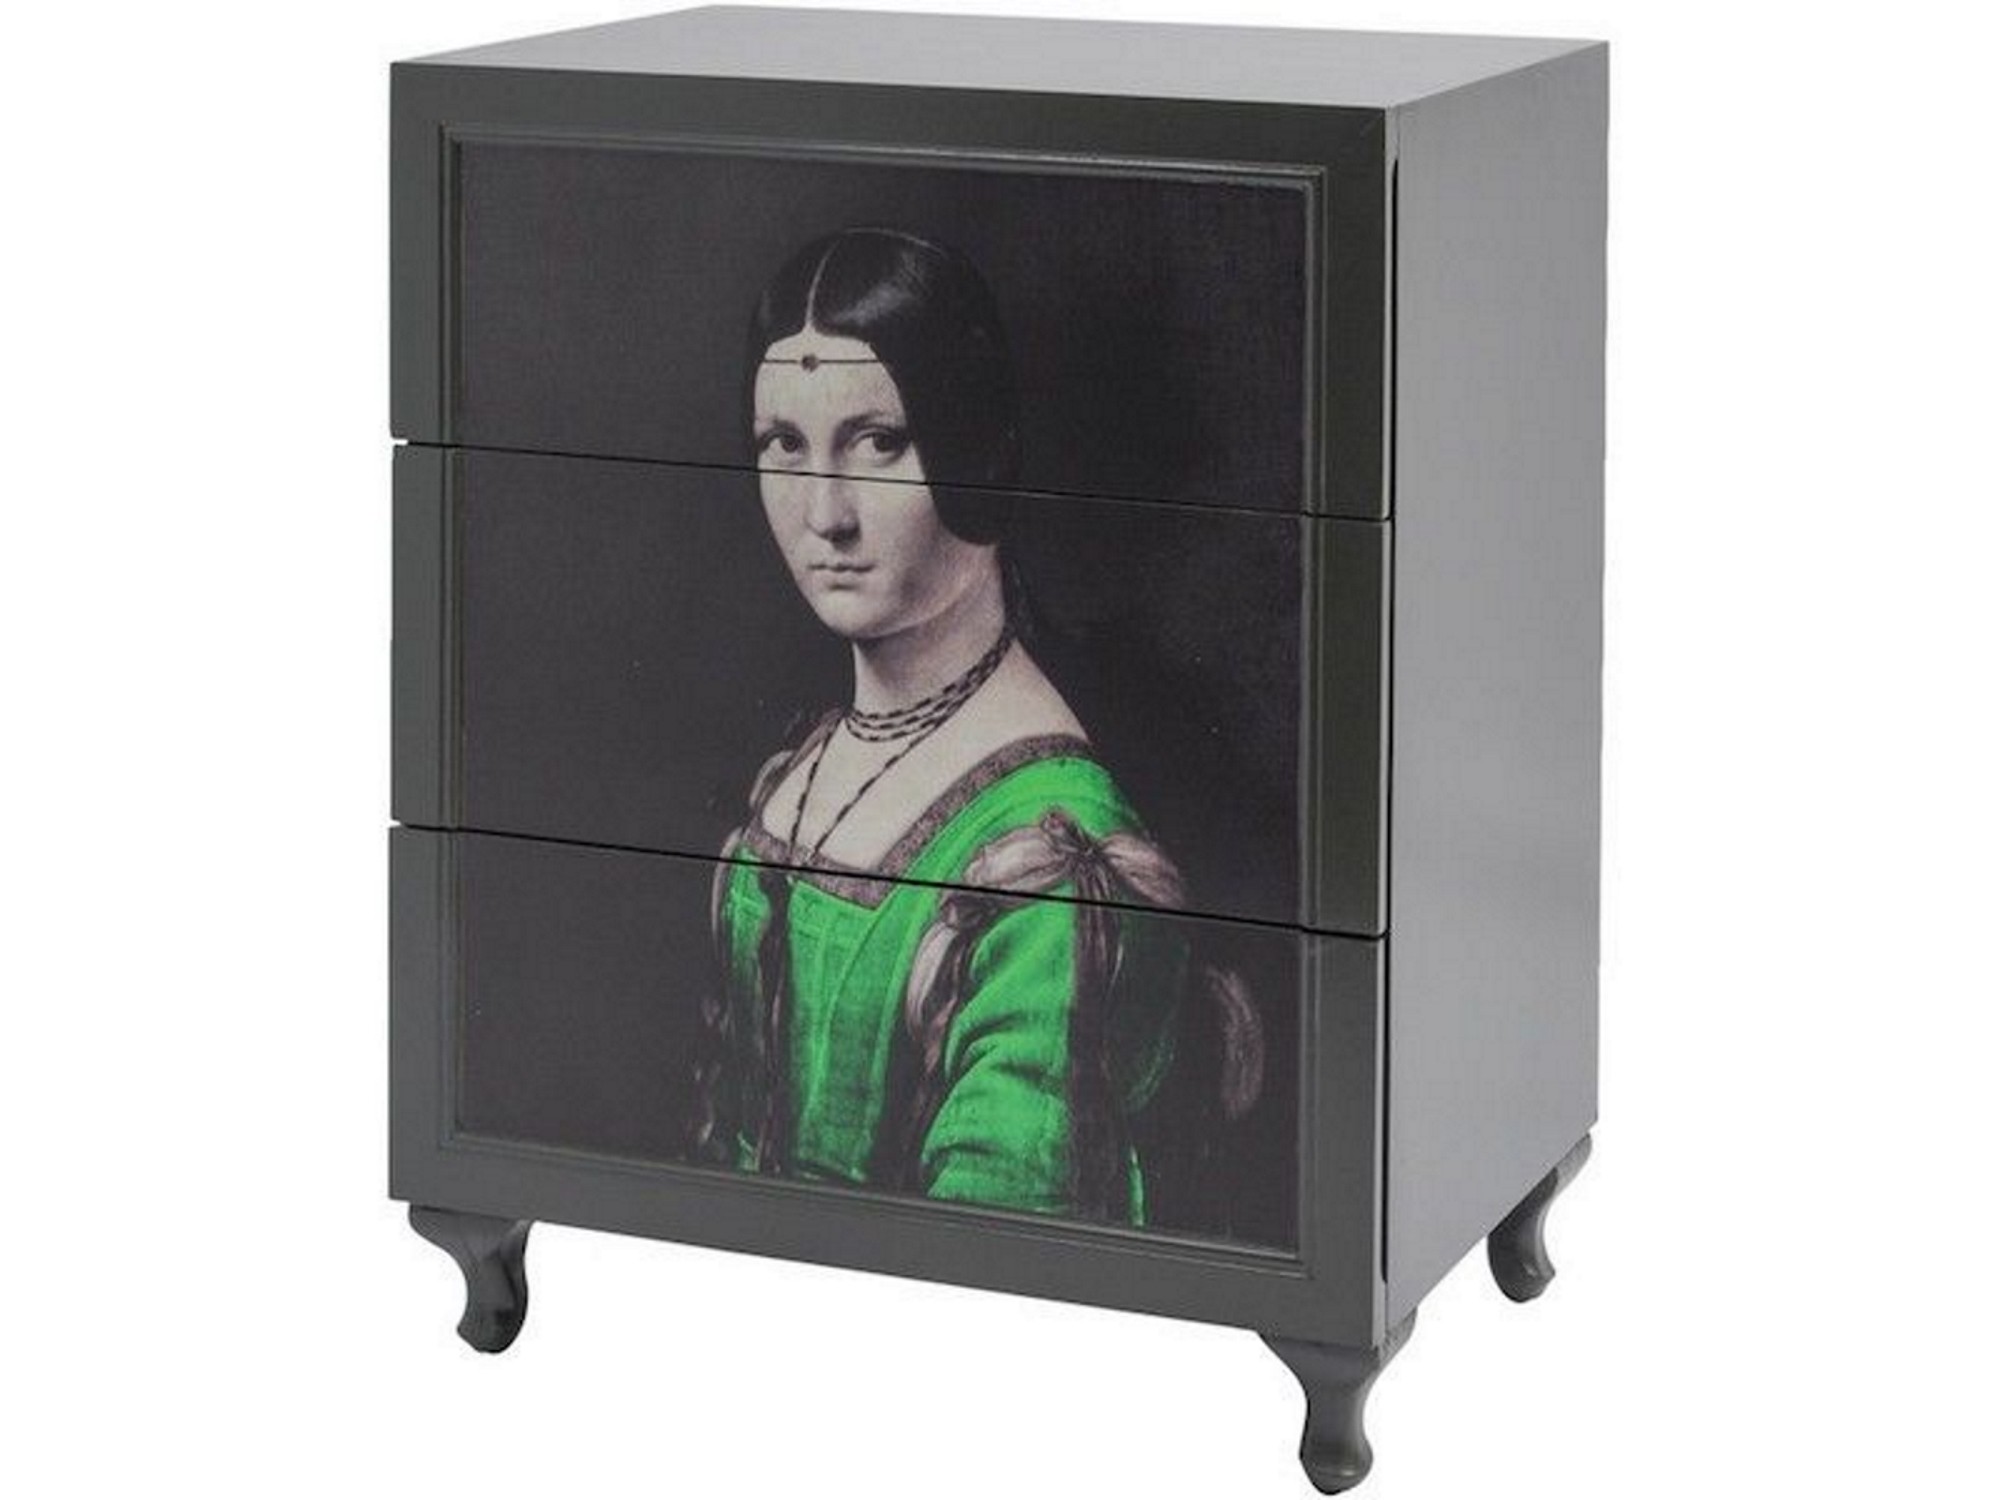 Tudor with a twist: the Master and Maiden Portrait Cabinets